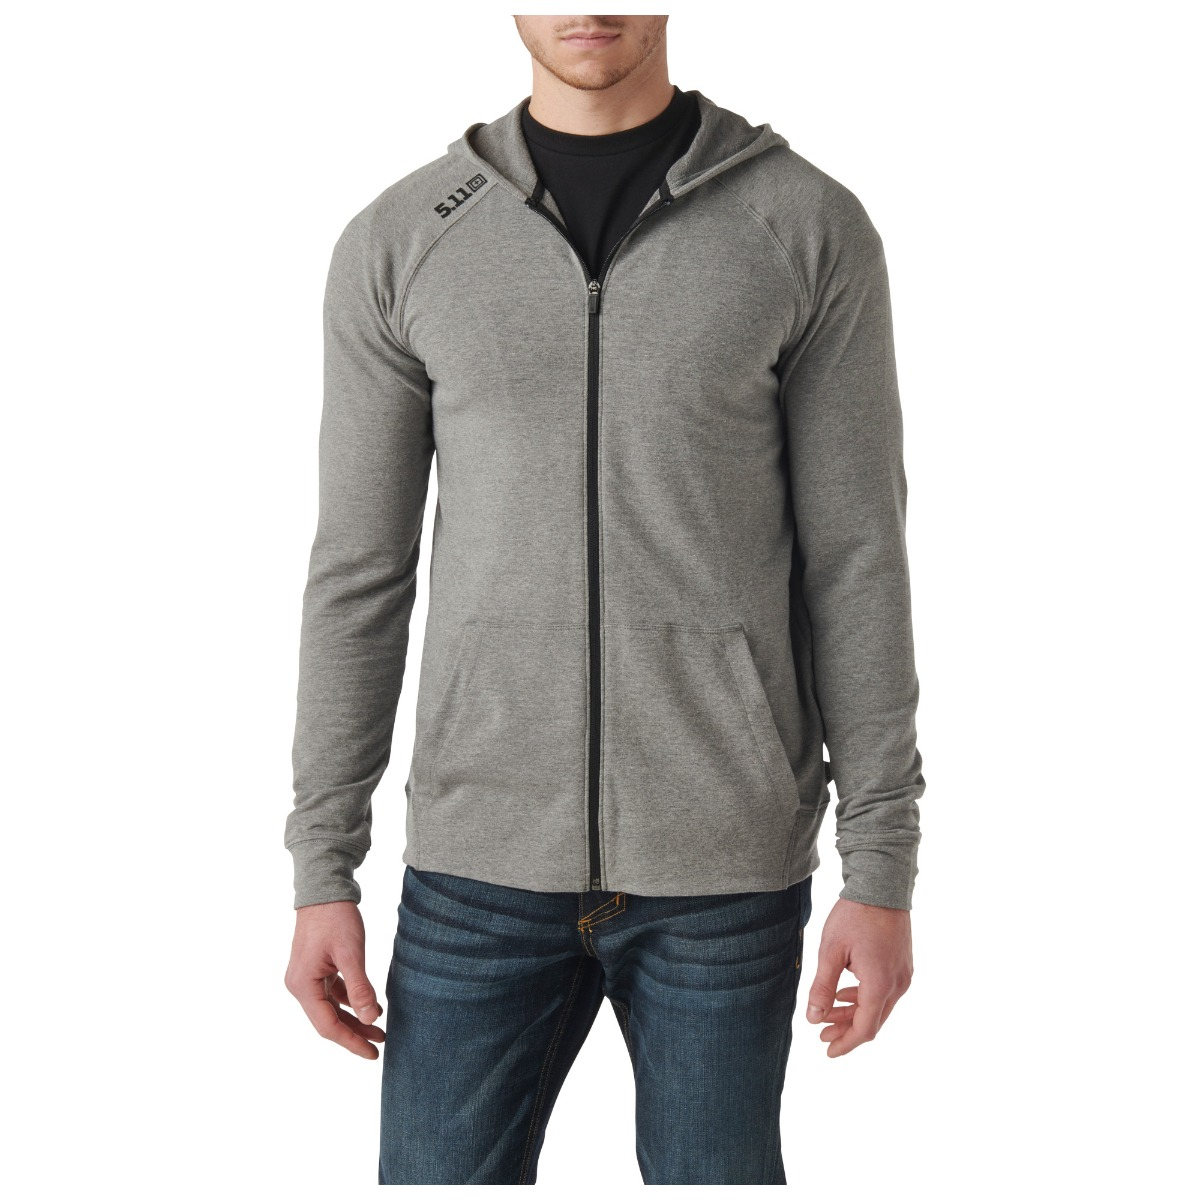 5.11 Tactical – Zone Full-Zip Hoodie